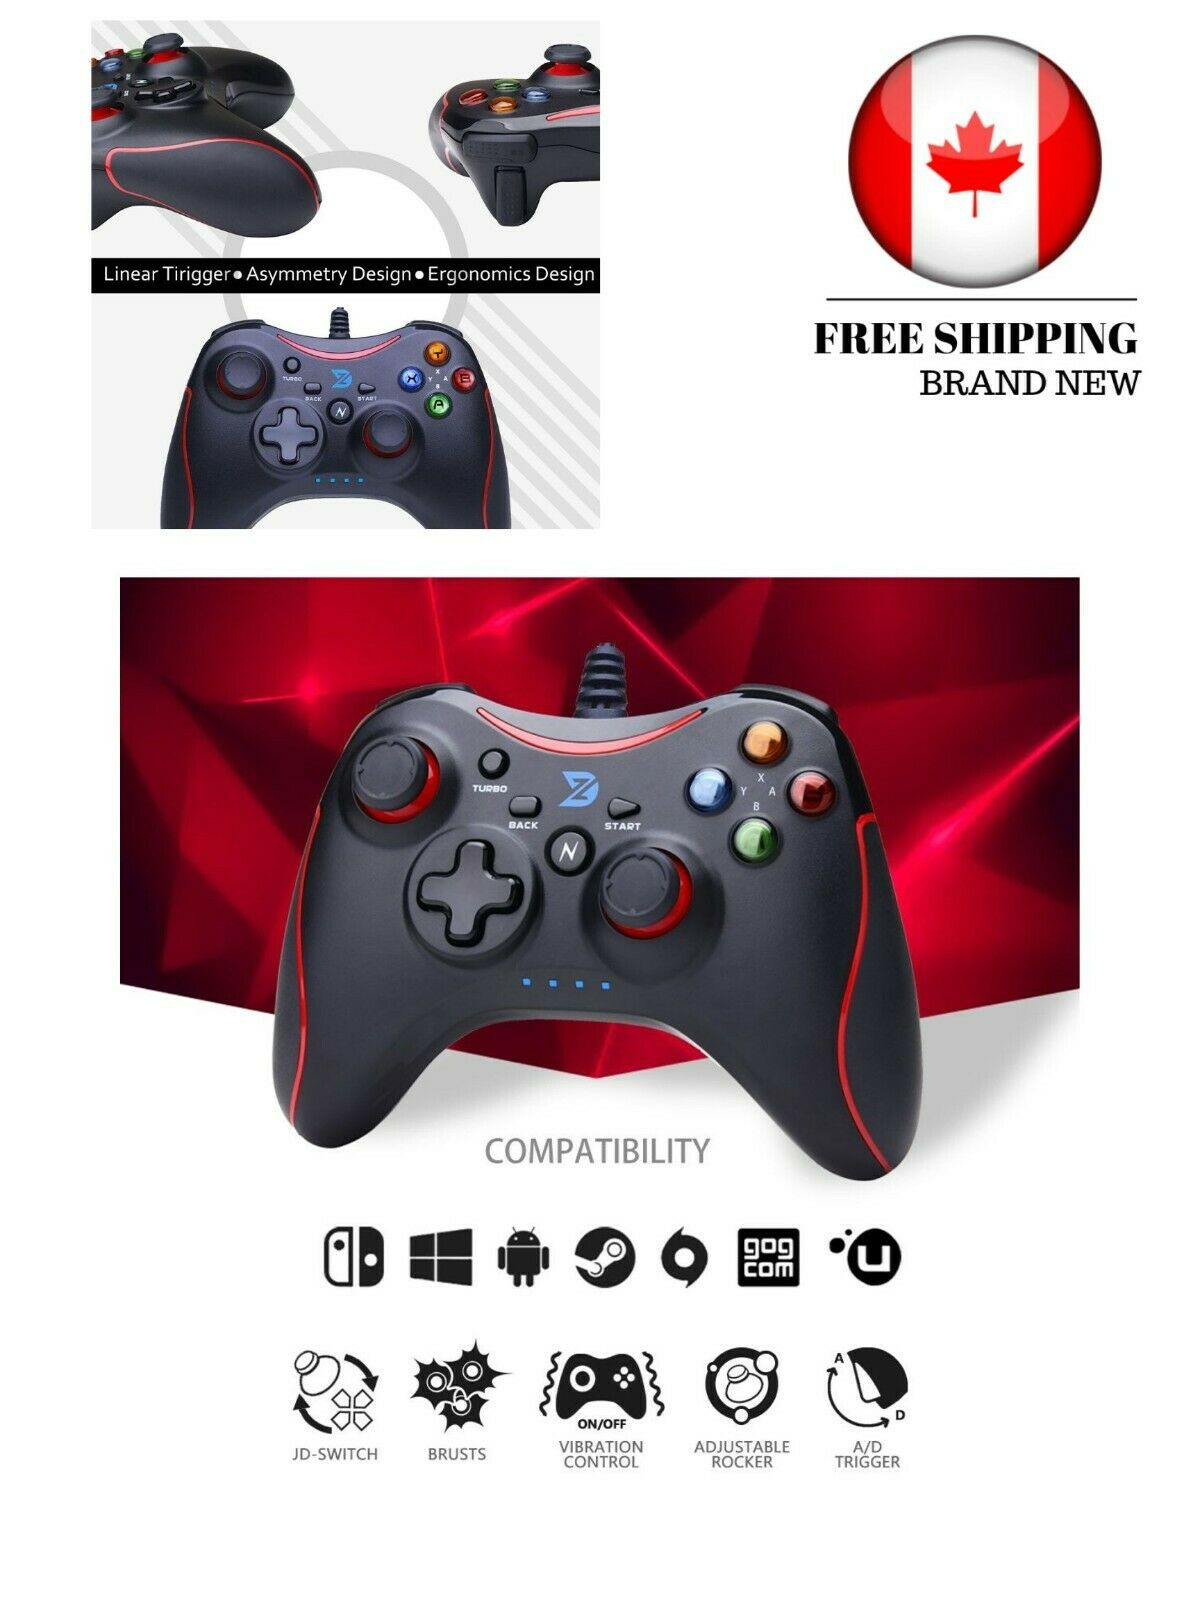 ZD-N【pro】[Red] Wired Gaming Controller Gamepad